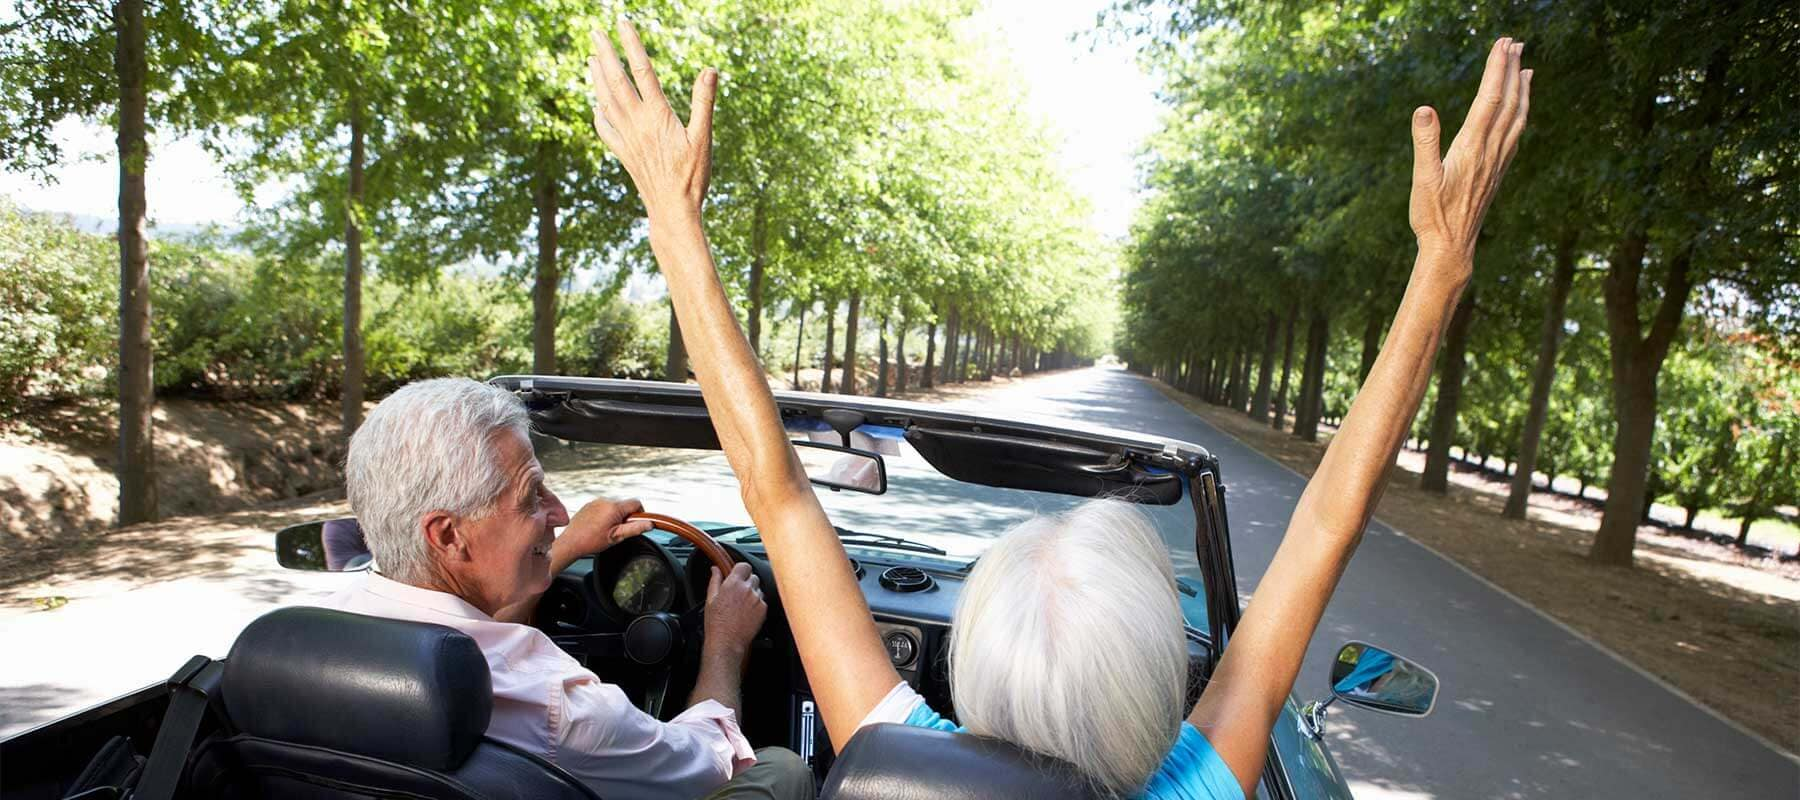 Excited Senior Couple in Convertible